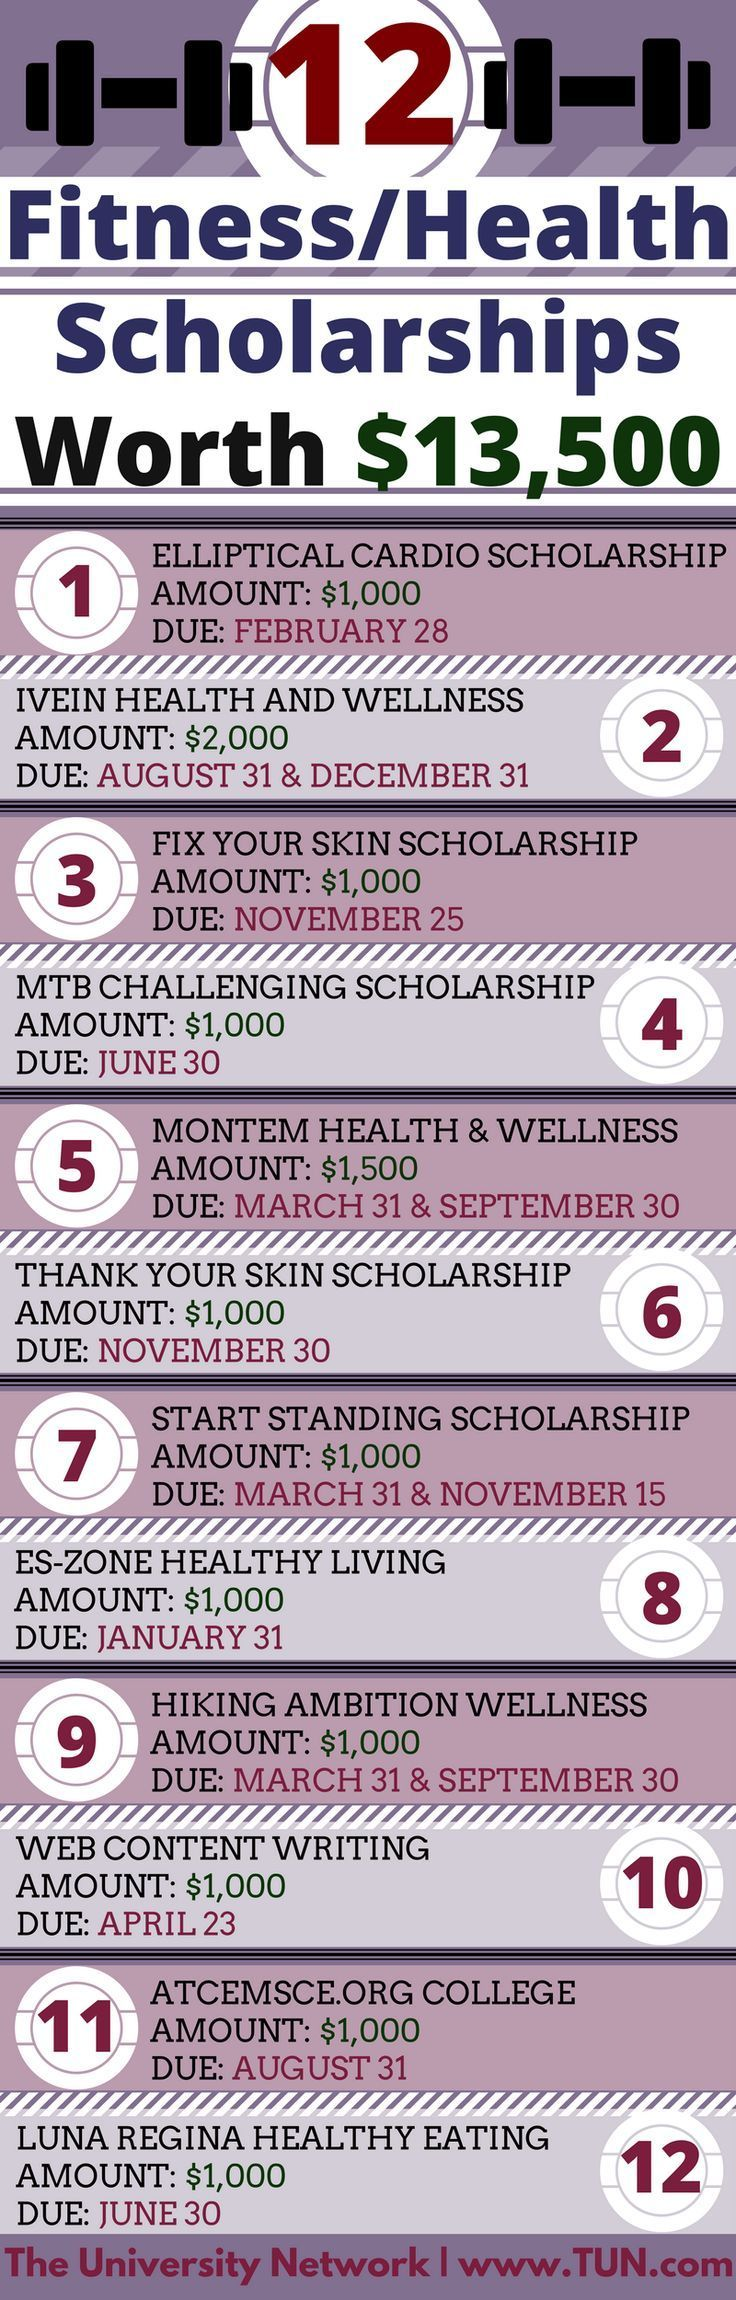 Do you love hiking, making juice smoothies, or taking care of your skin? Apply for these scholarships!